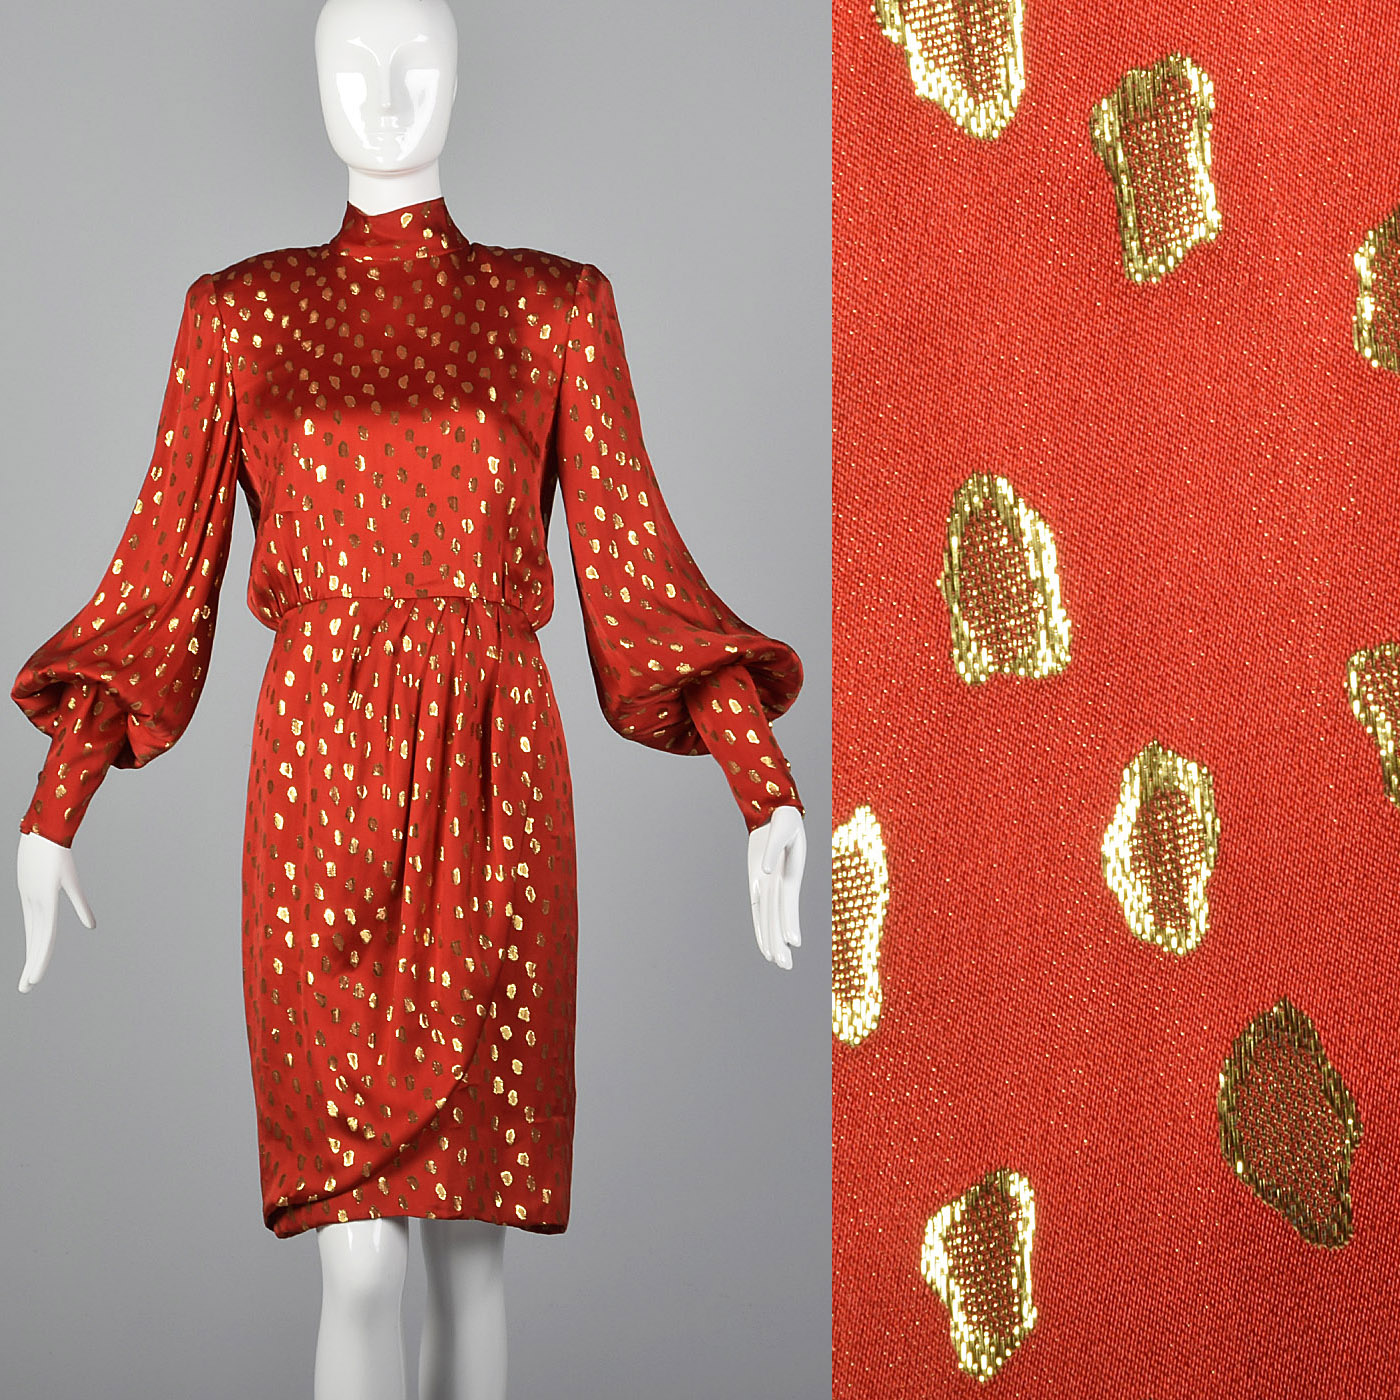 1980s Guy Laroche Red Silk Pencil Dress with Metallic Gold Design